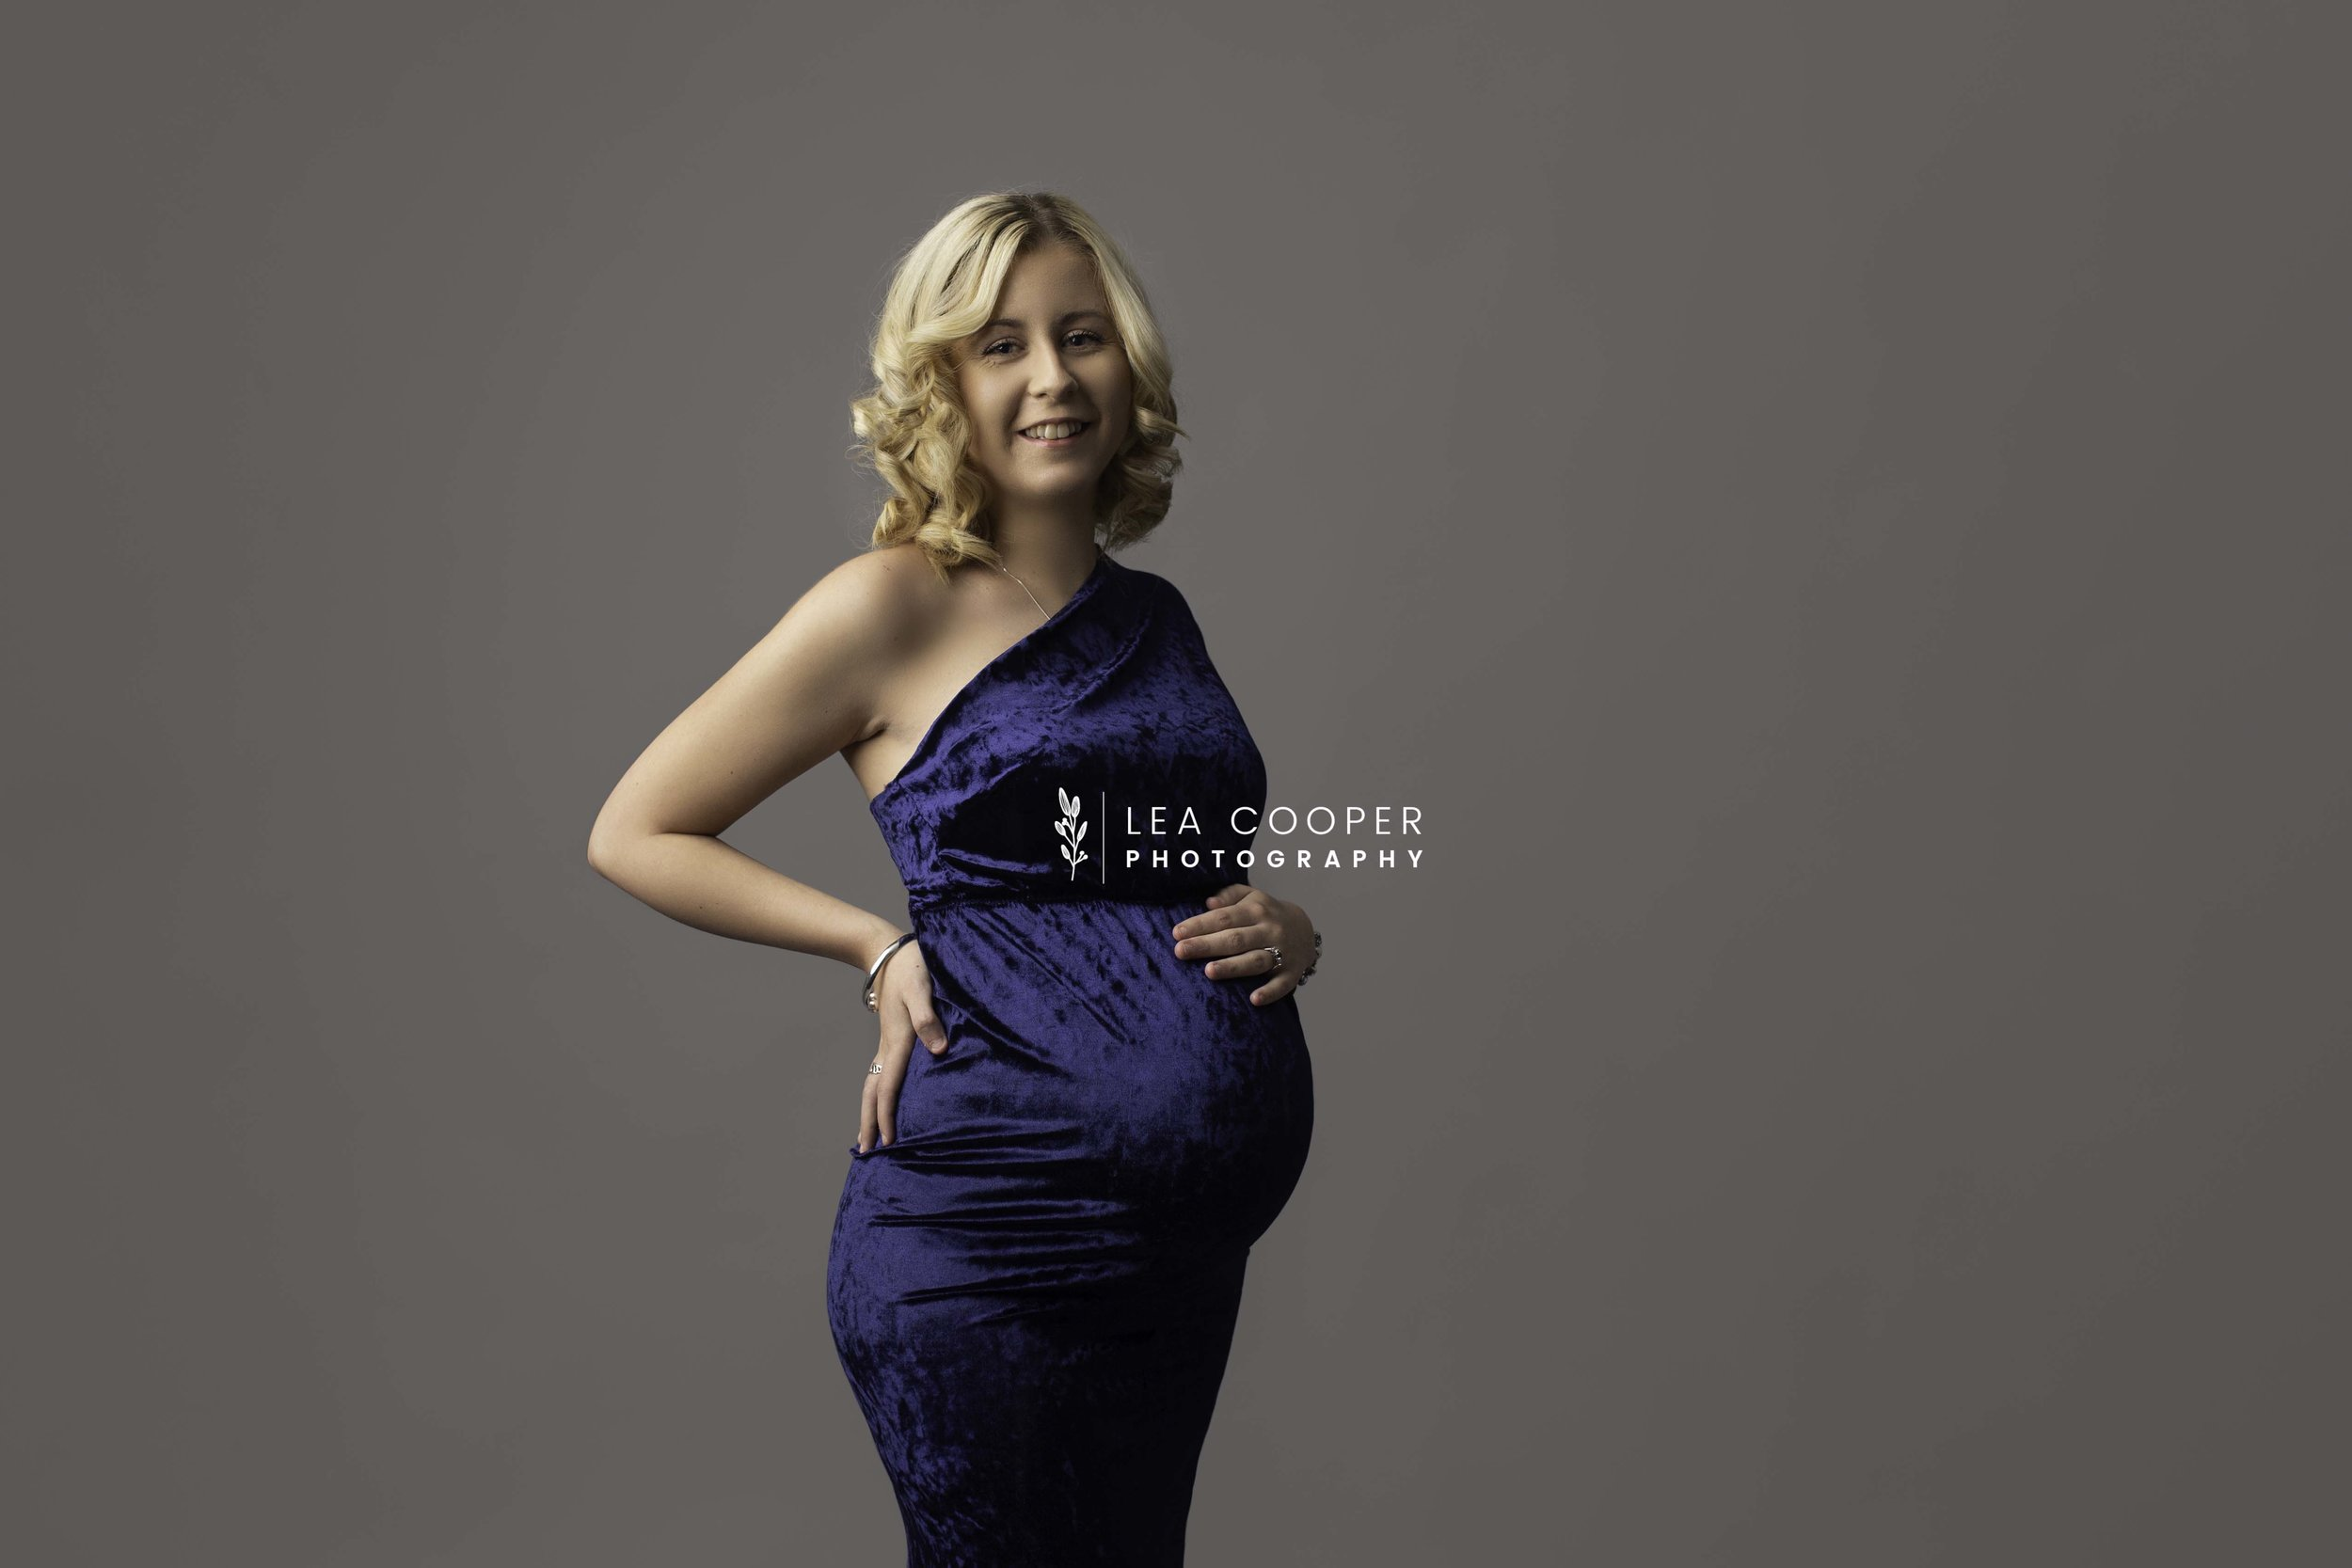 LEA COOPER PHOTOGRAPHY NEWBORN MATERNITY SESSION BABY BUMP SESSION WILLENHALL WEST MIDLANDS WALSALL WEDNESBURY UK1.jpg